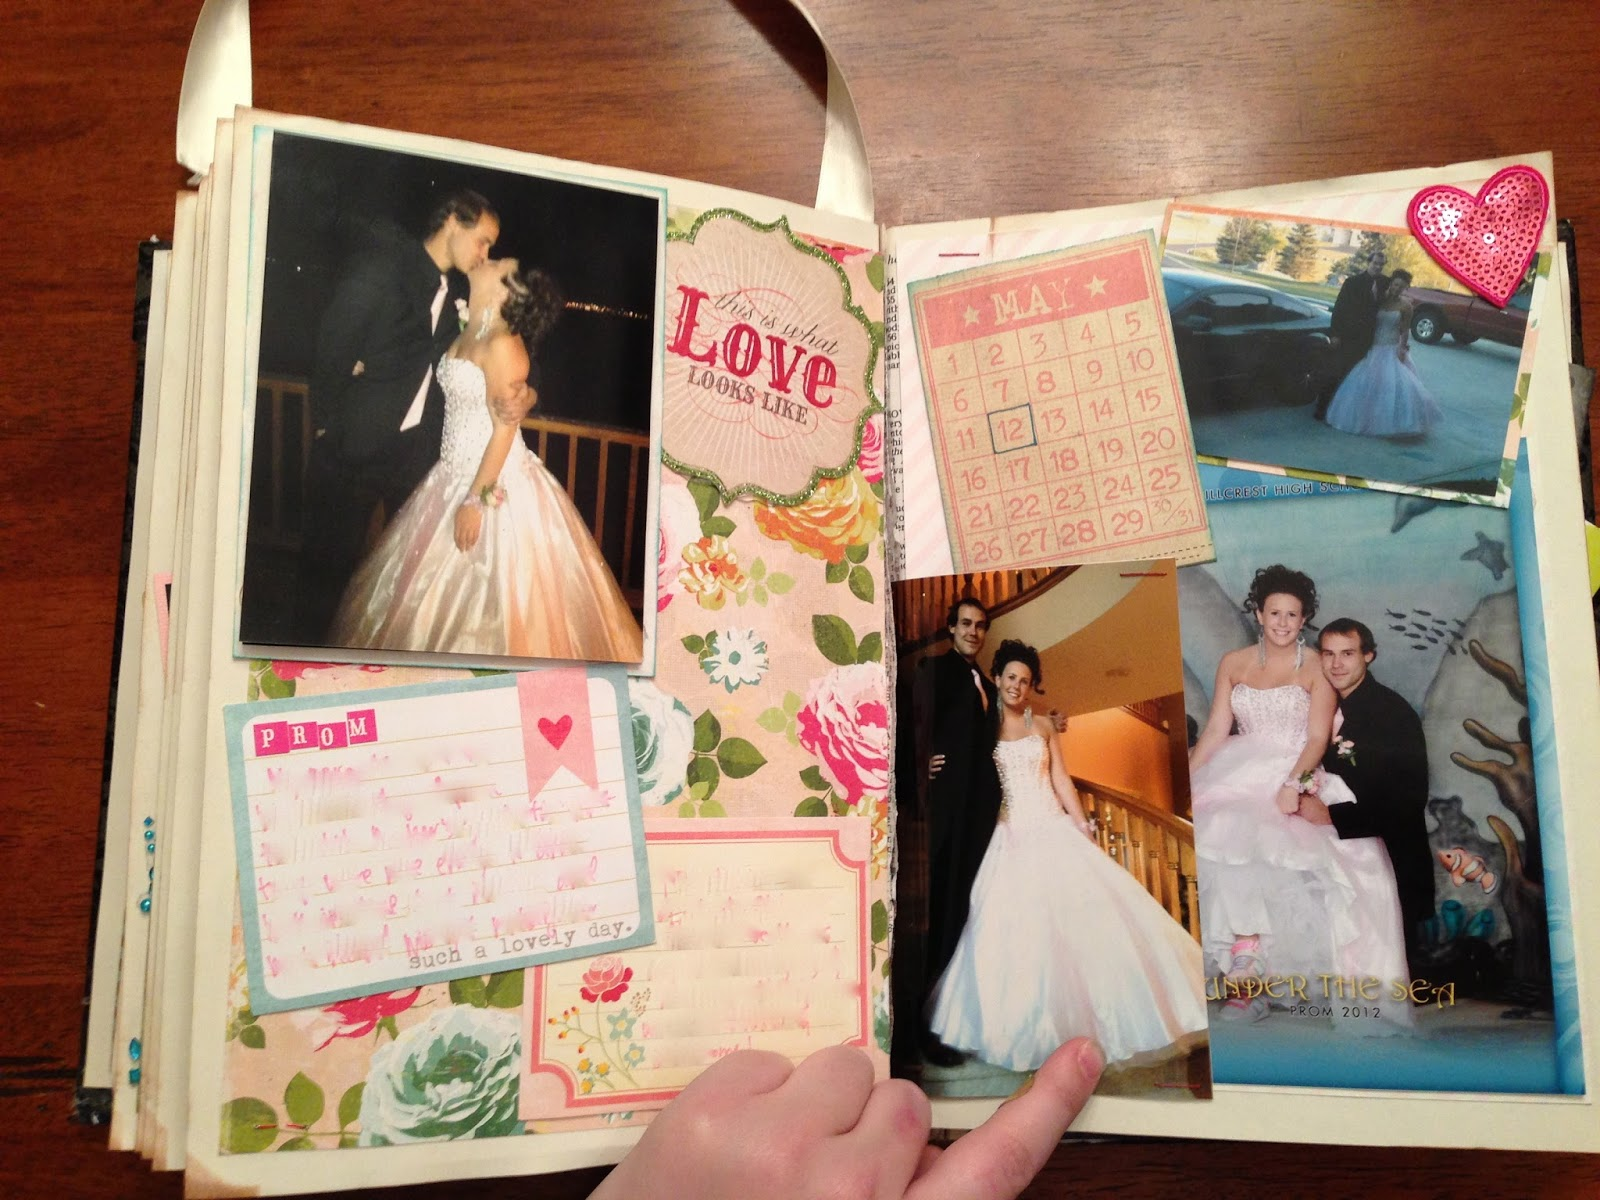 How to scrapbook like a pro